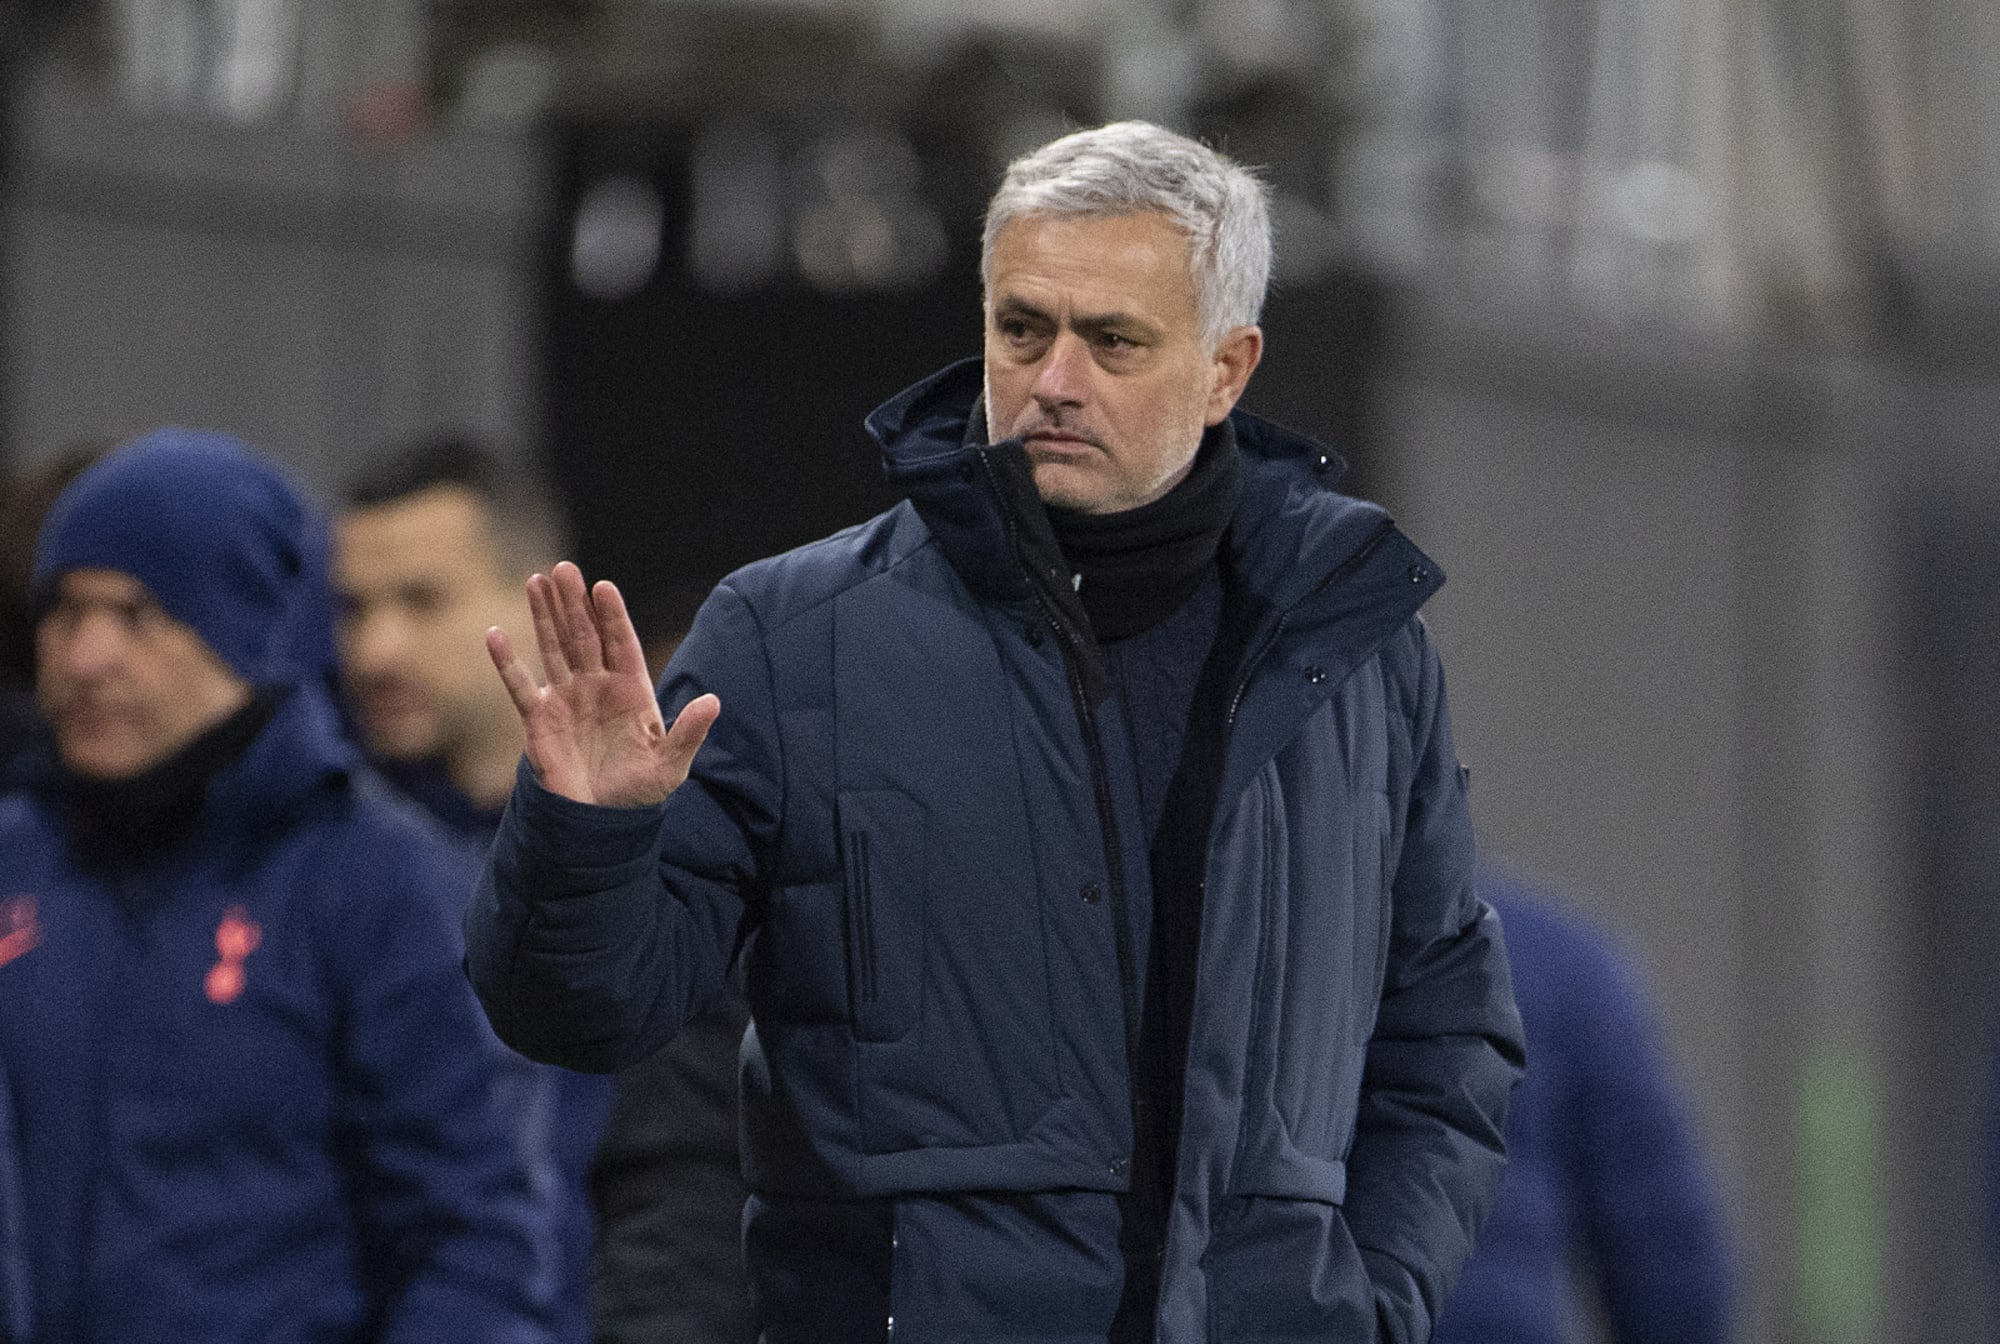 Jose Mourinho's AS Roma linked with Manchester United player